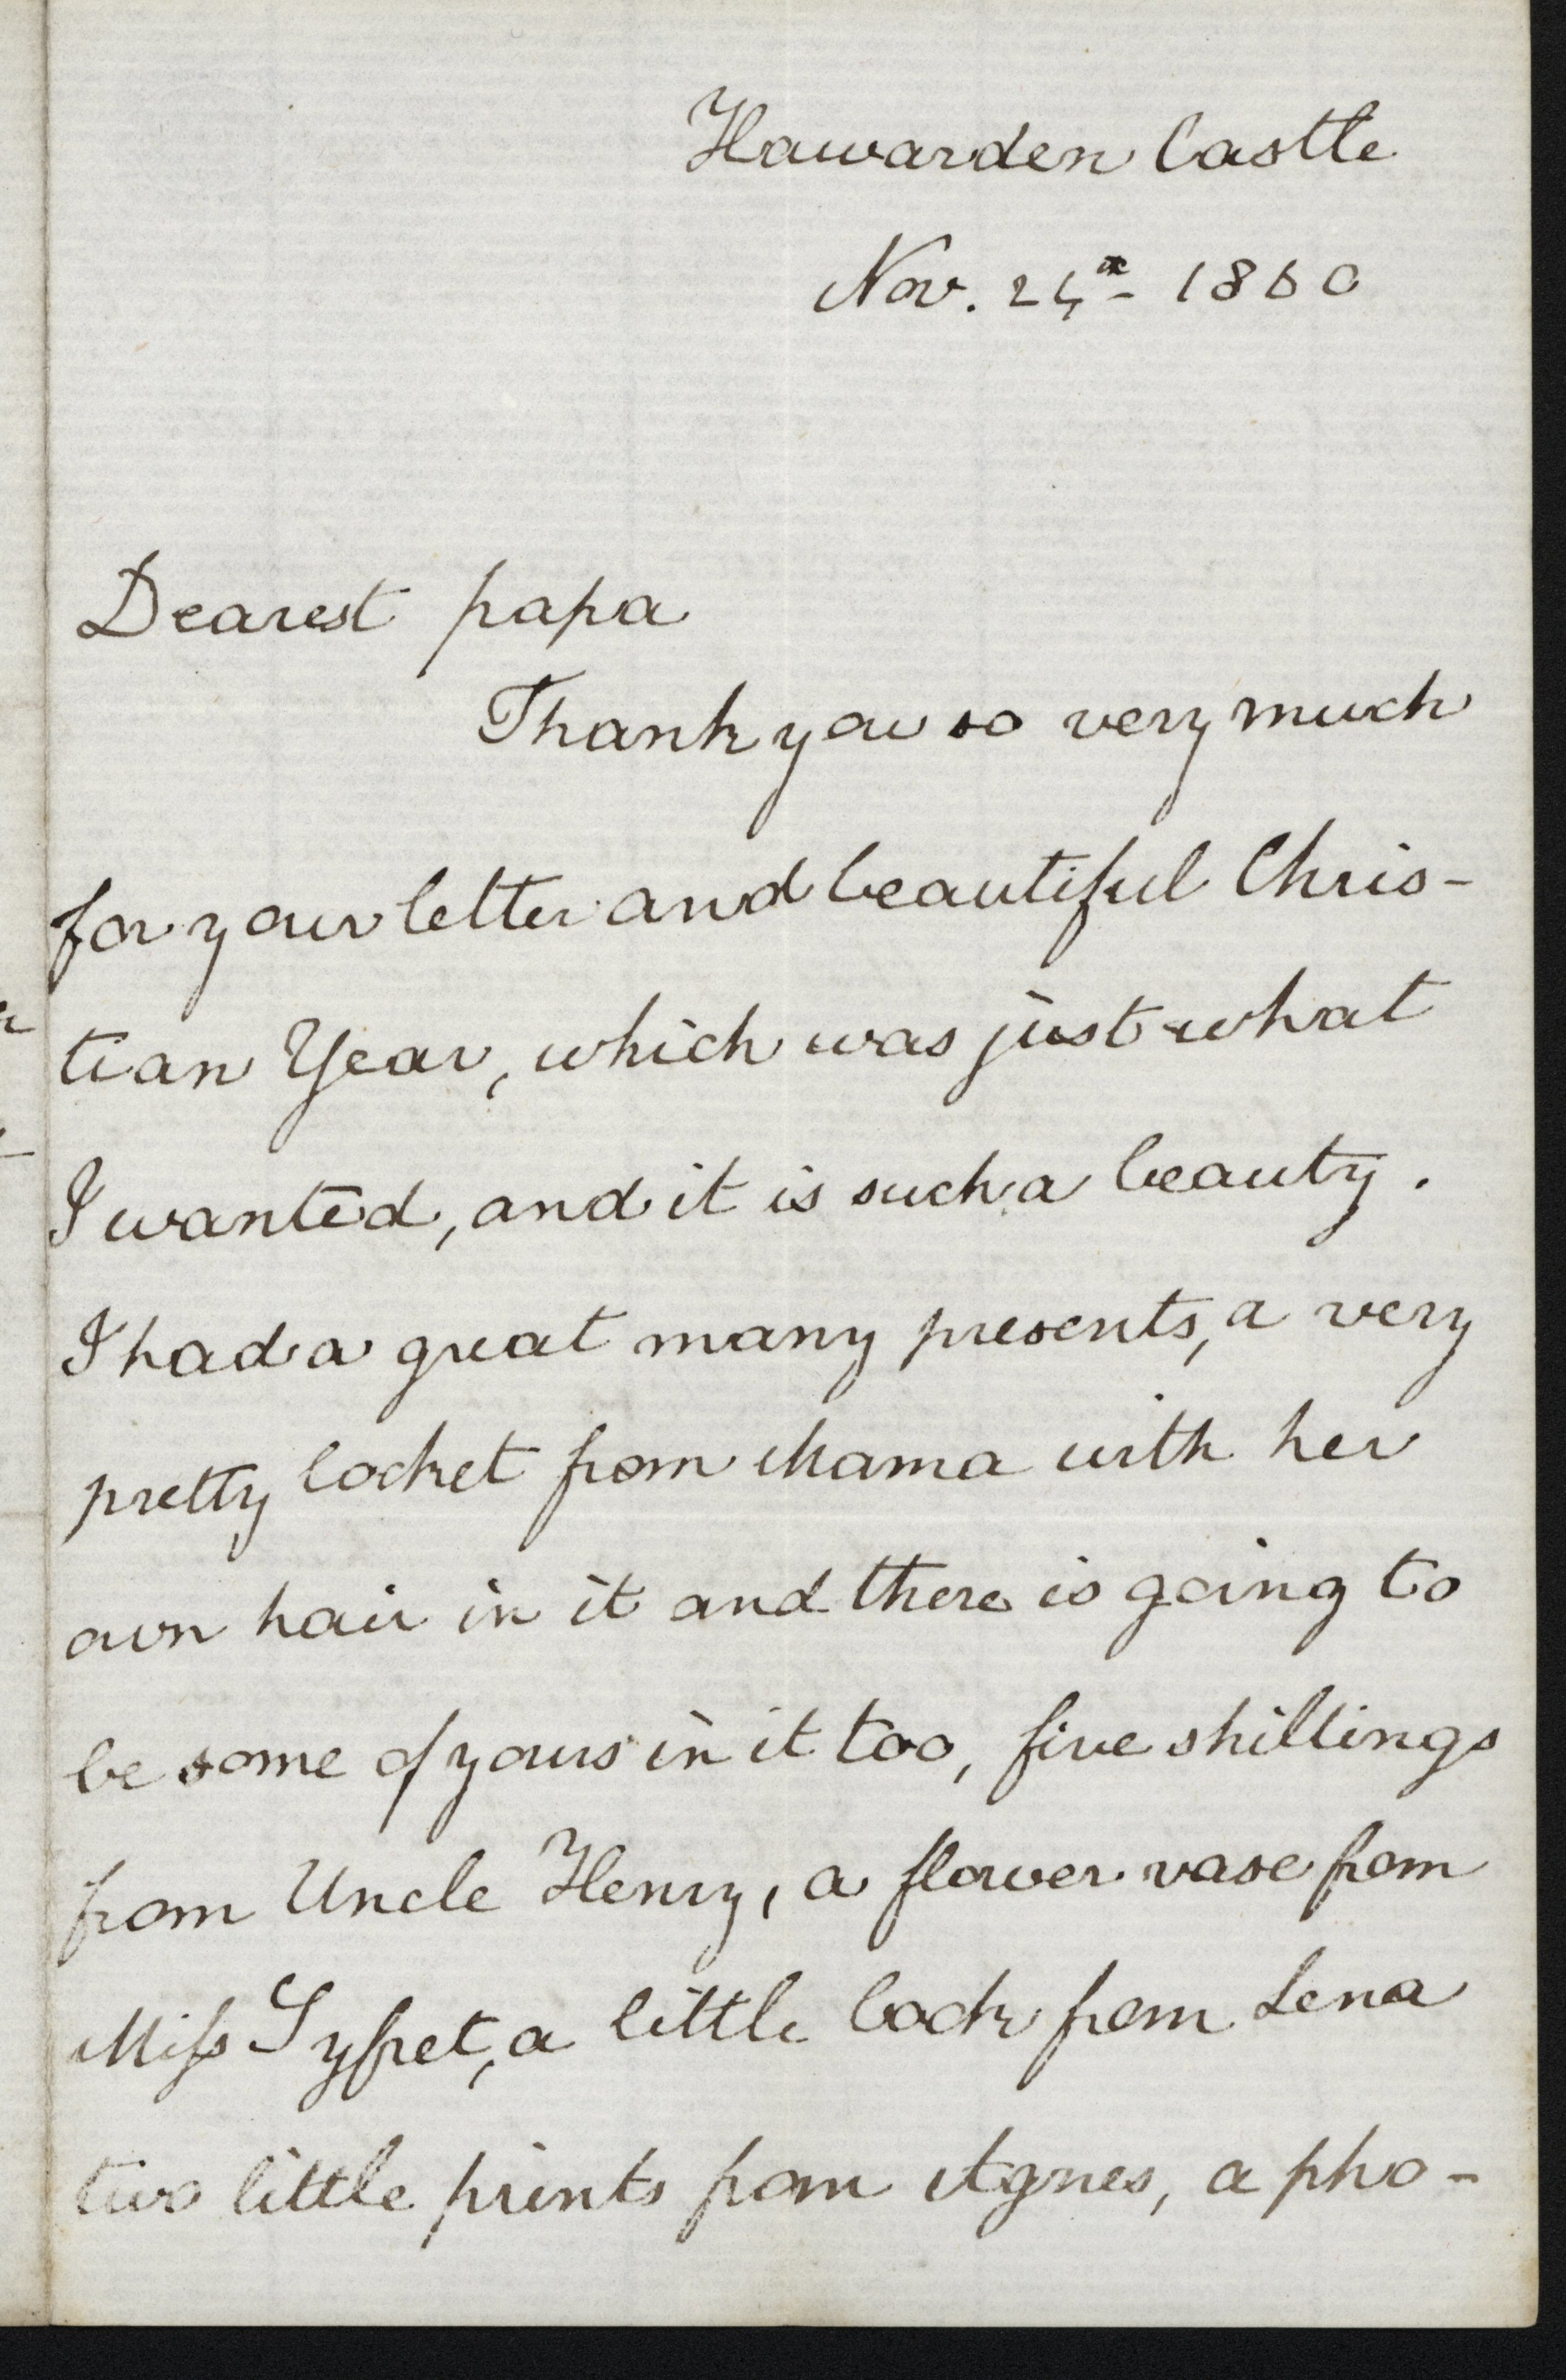 The transcription of the letter appears in full at the end of the post.